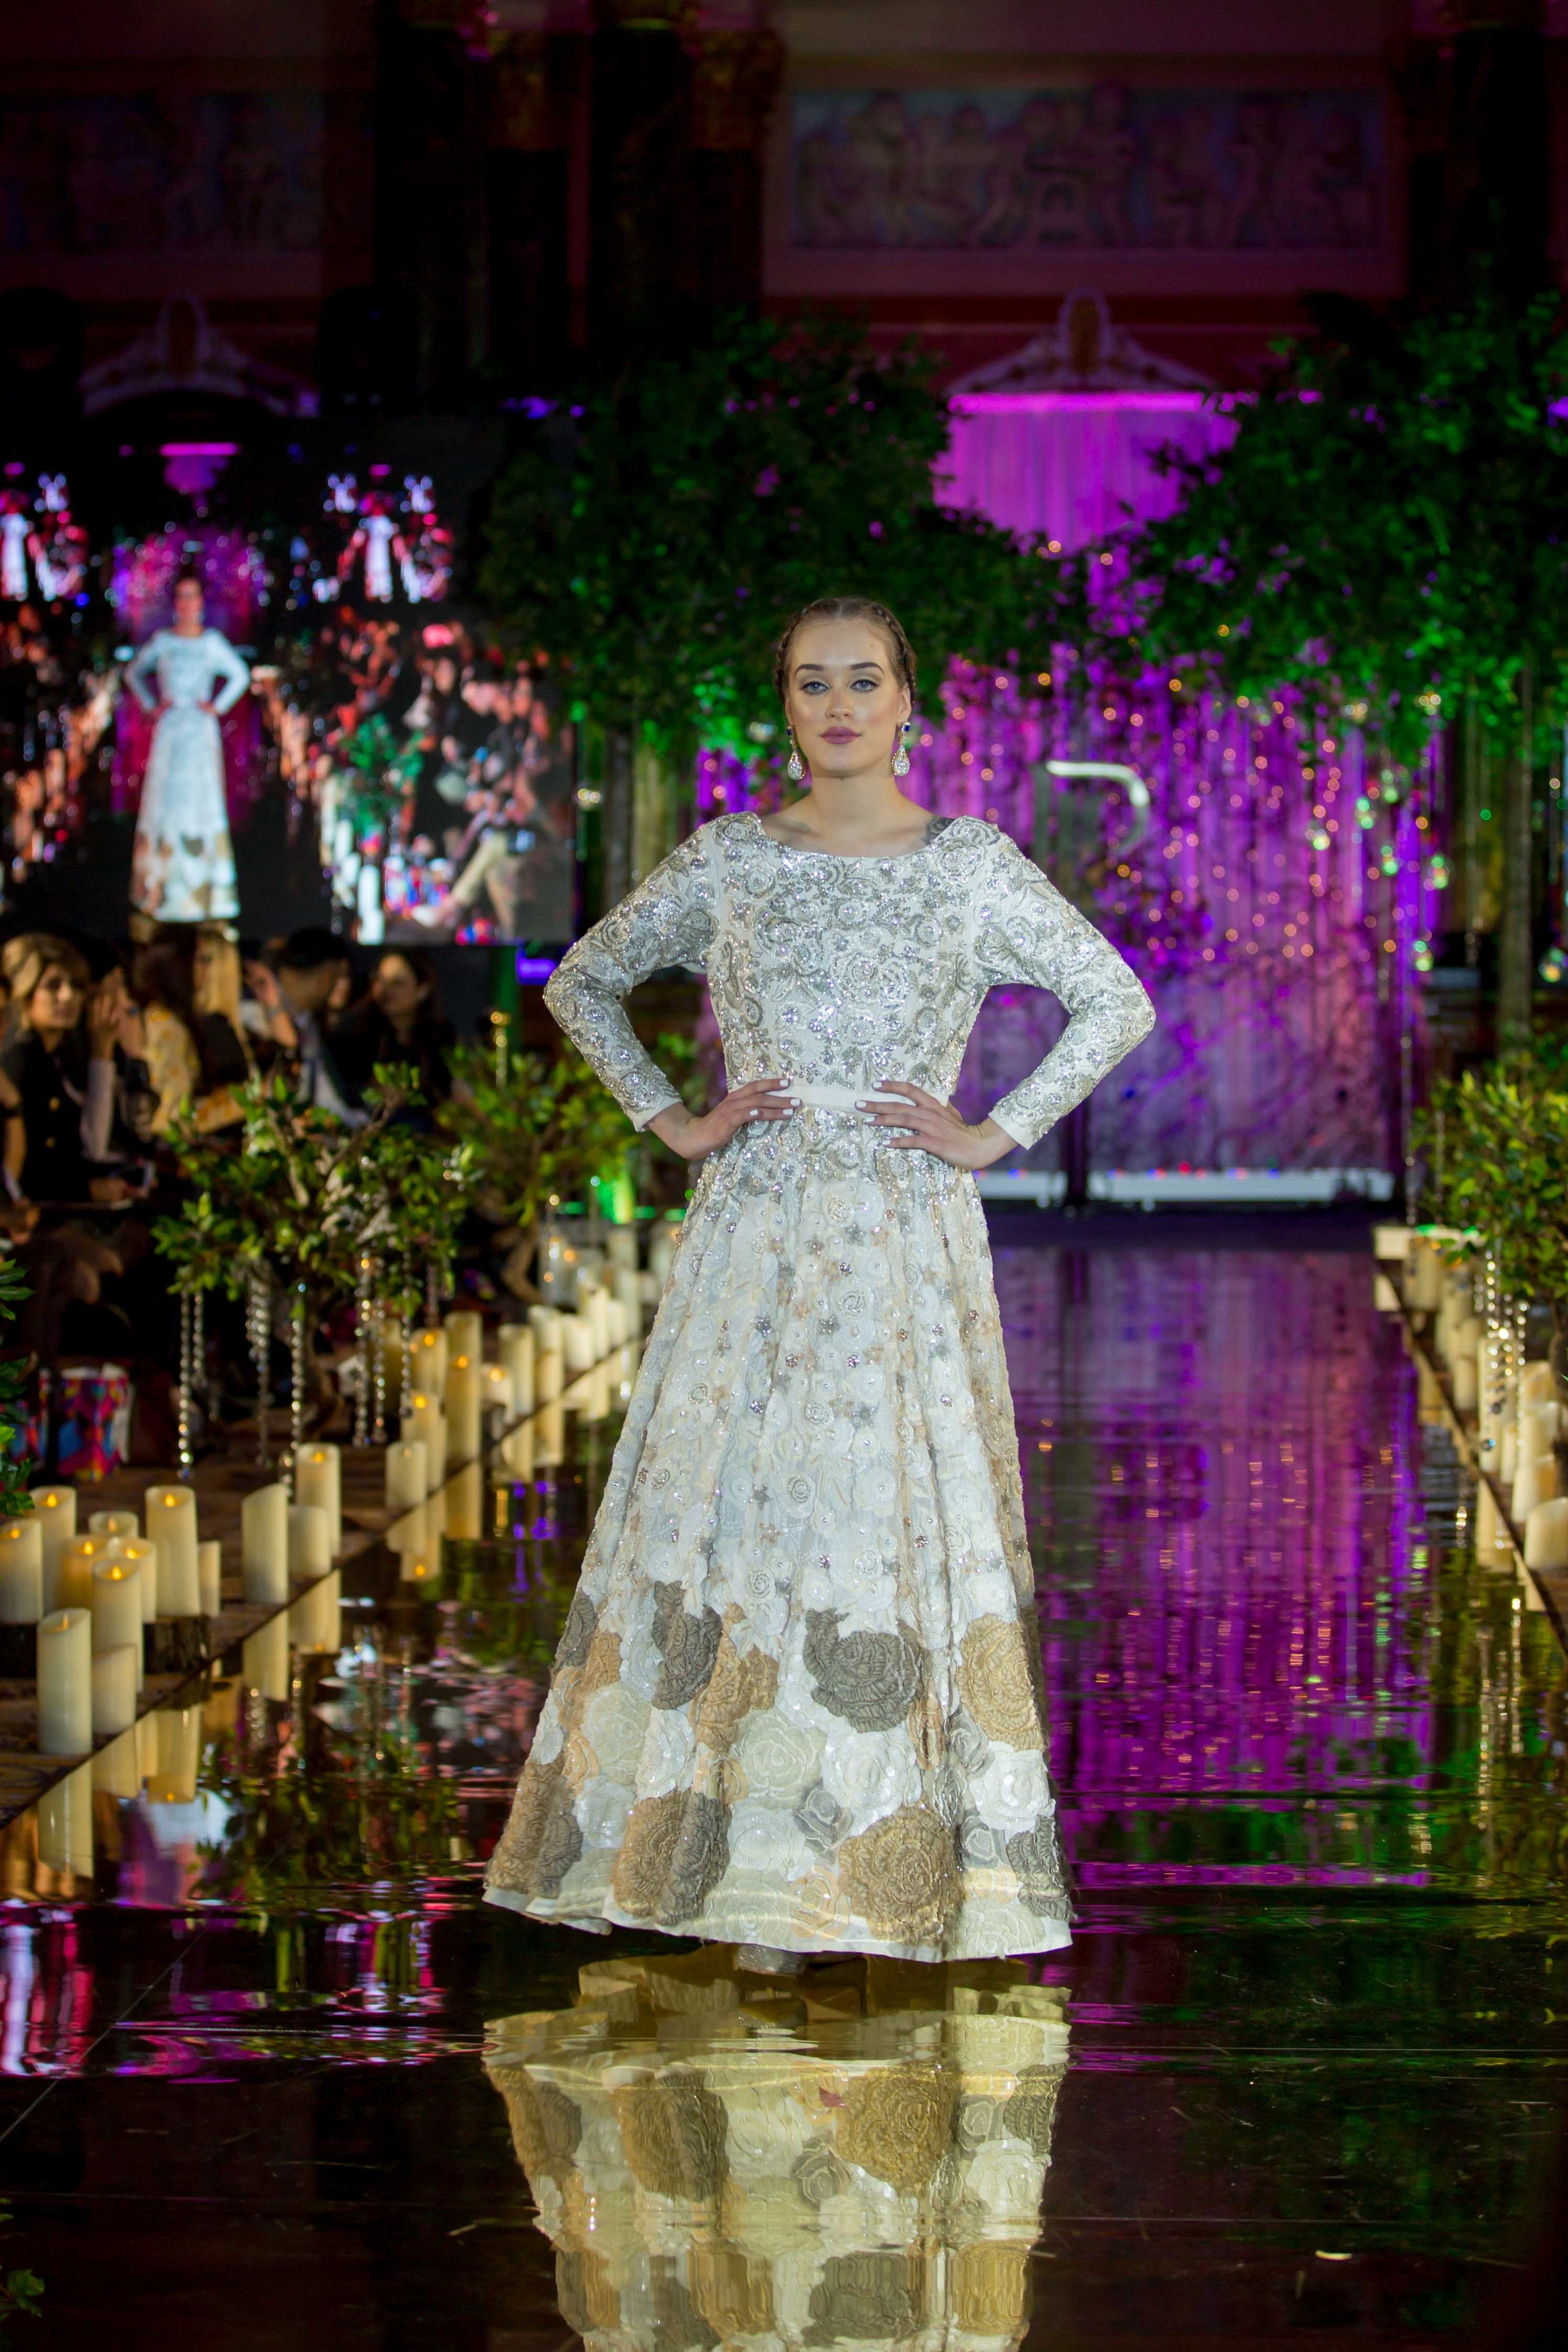 IPLF-IPL-Indian-Pakistani-London-Fashion-London-Week-catwalk-photographer-natalia-smith-photography-my-trousseau-49.jpg